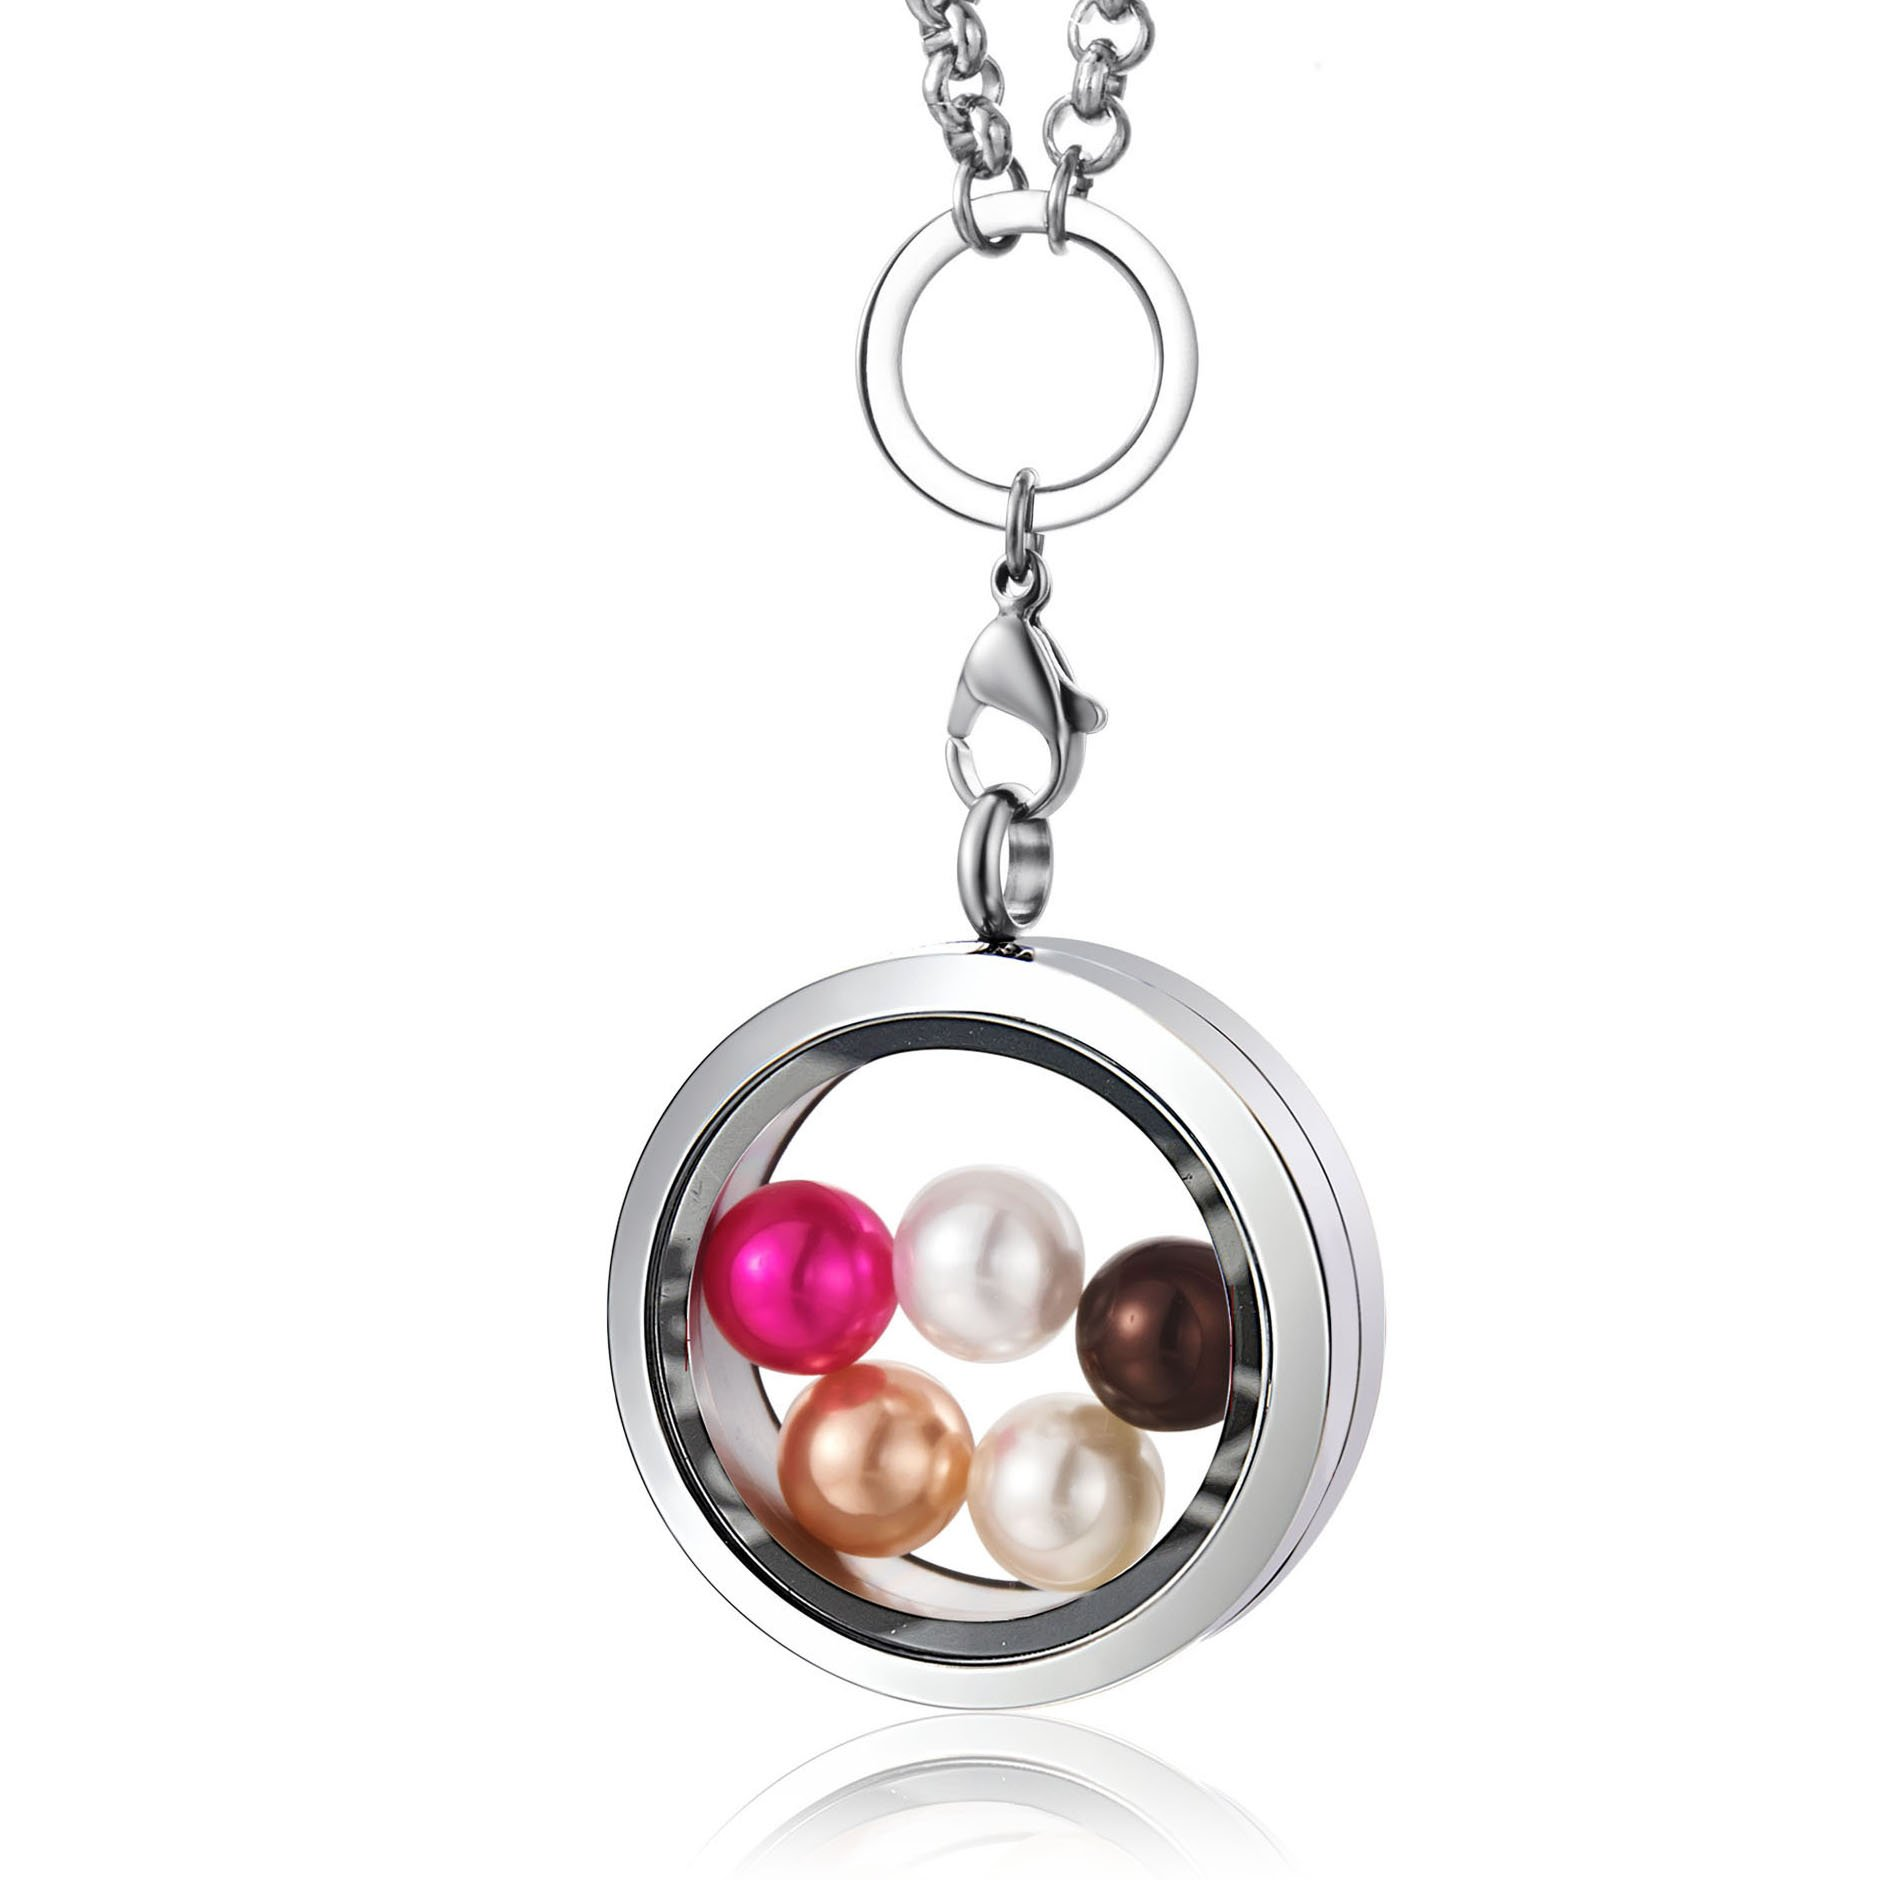 CAPTTE 316L Stainless Steel Pearl Cage Pendant High-Capacity Living Memory Floating Locket Pendant Necklace Women Thickened Toughened Glass Locket Necklace Free Chain 5pcs Pearl Gift Set